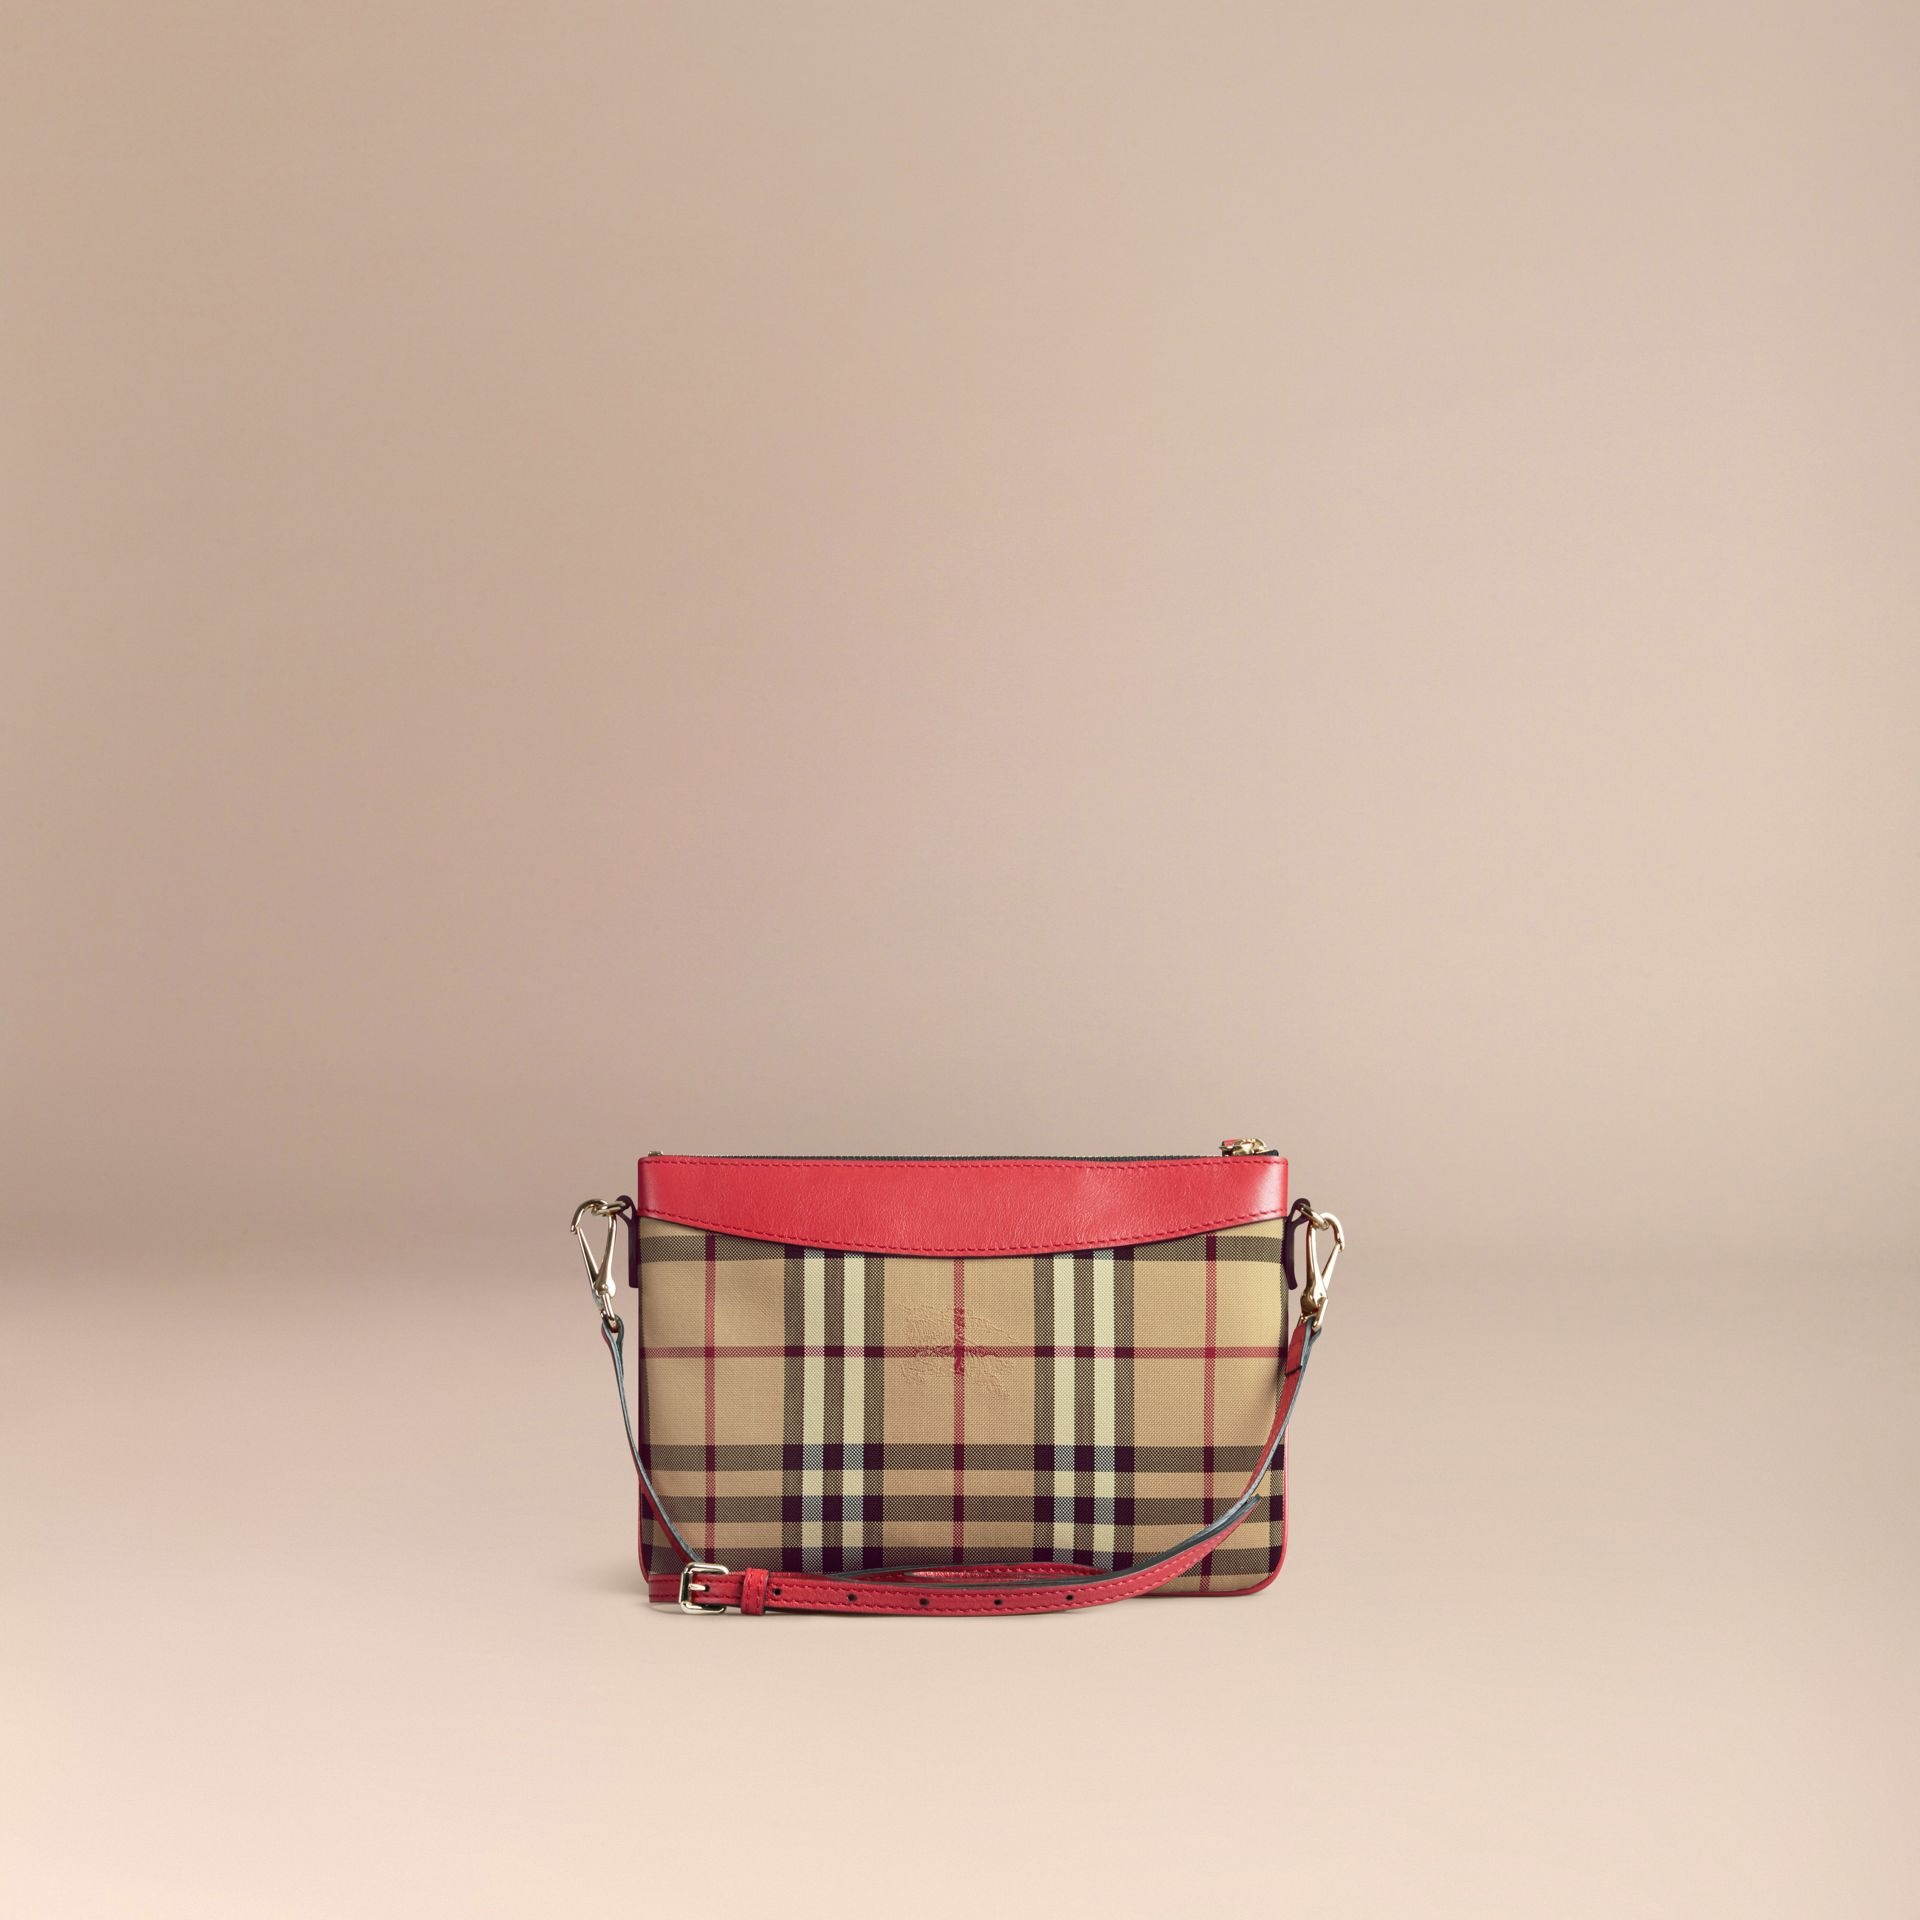 Horseferry Check and Leather Clutch Bag in Parade Red - Women | Burberry - gallery image 5